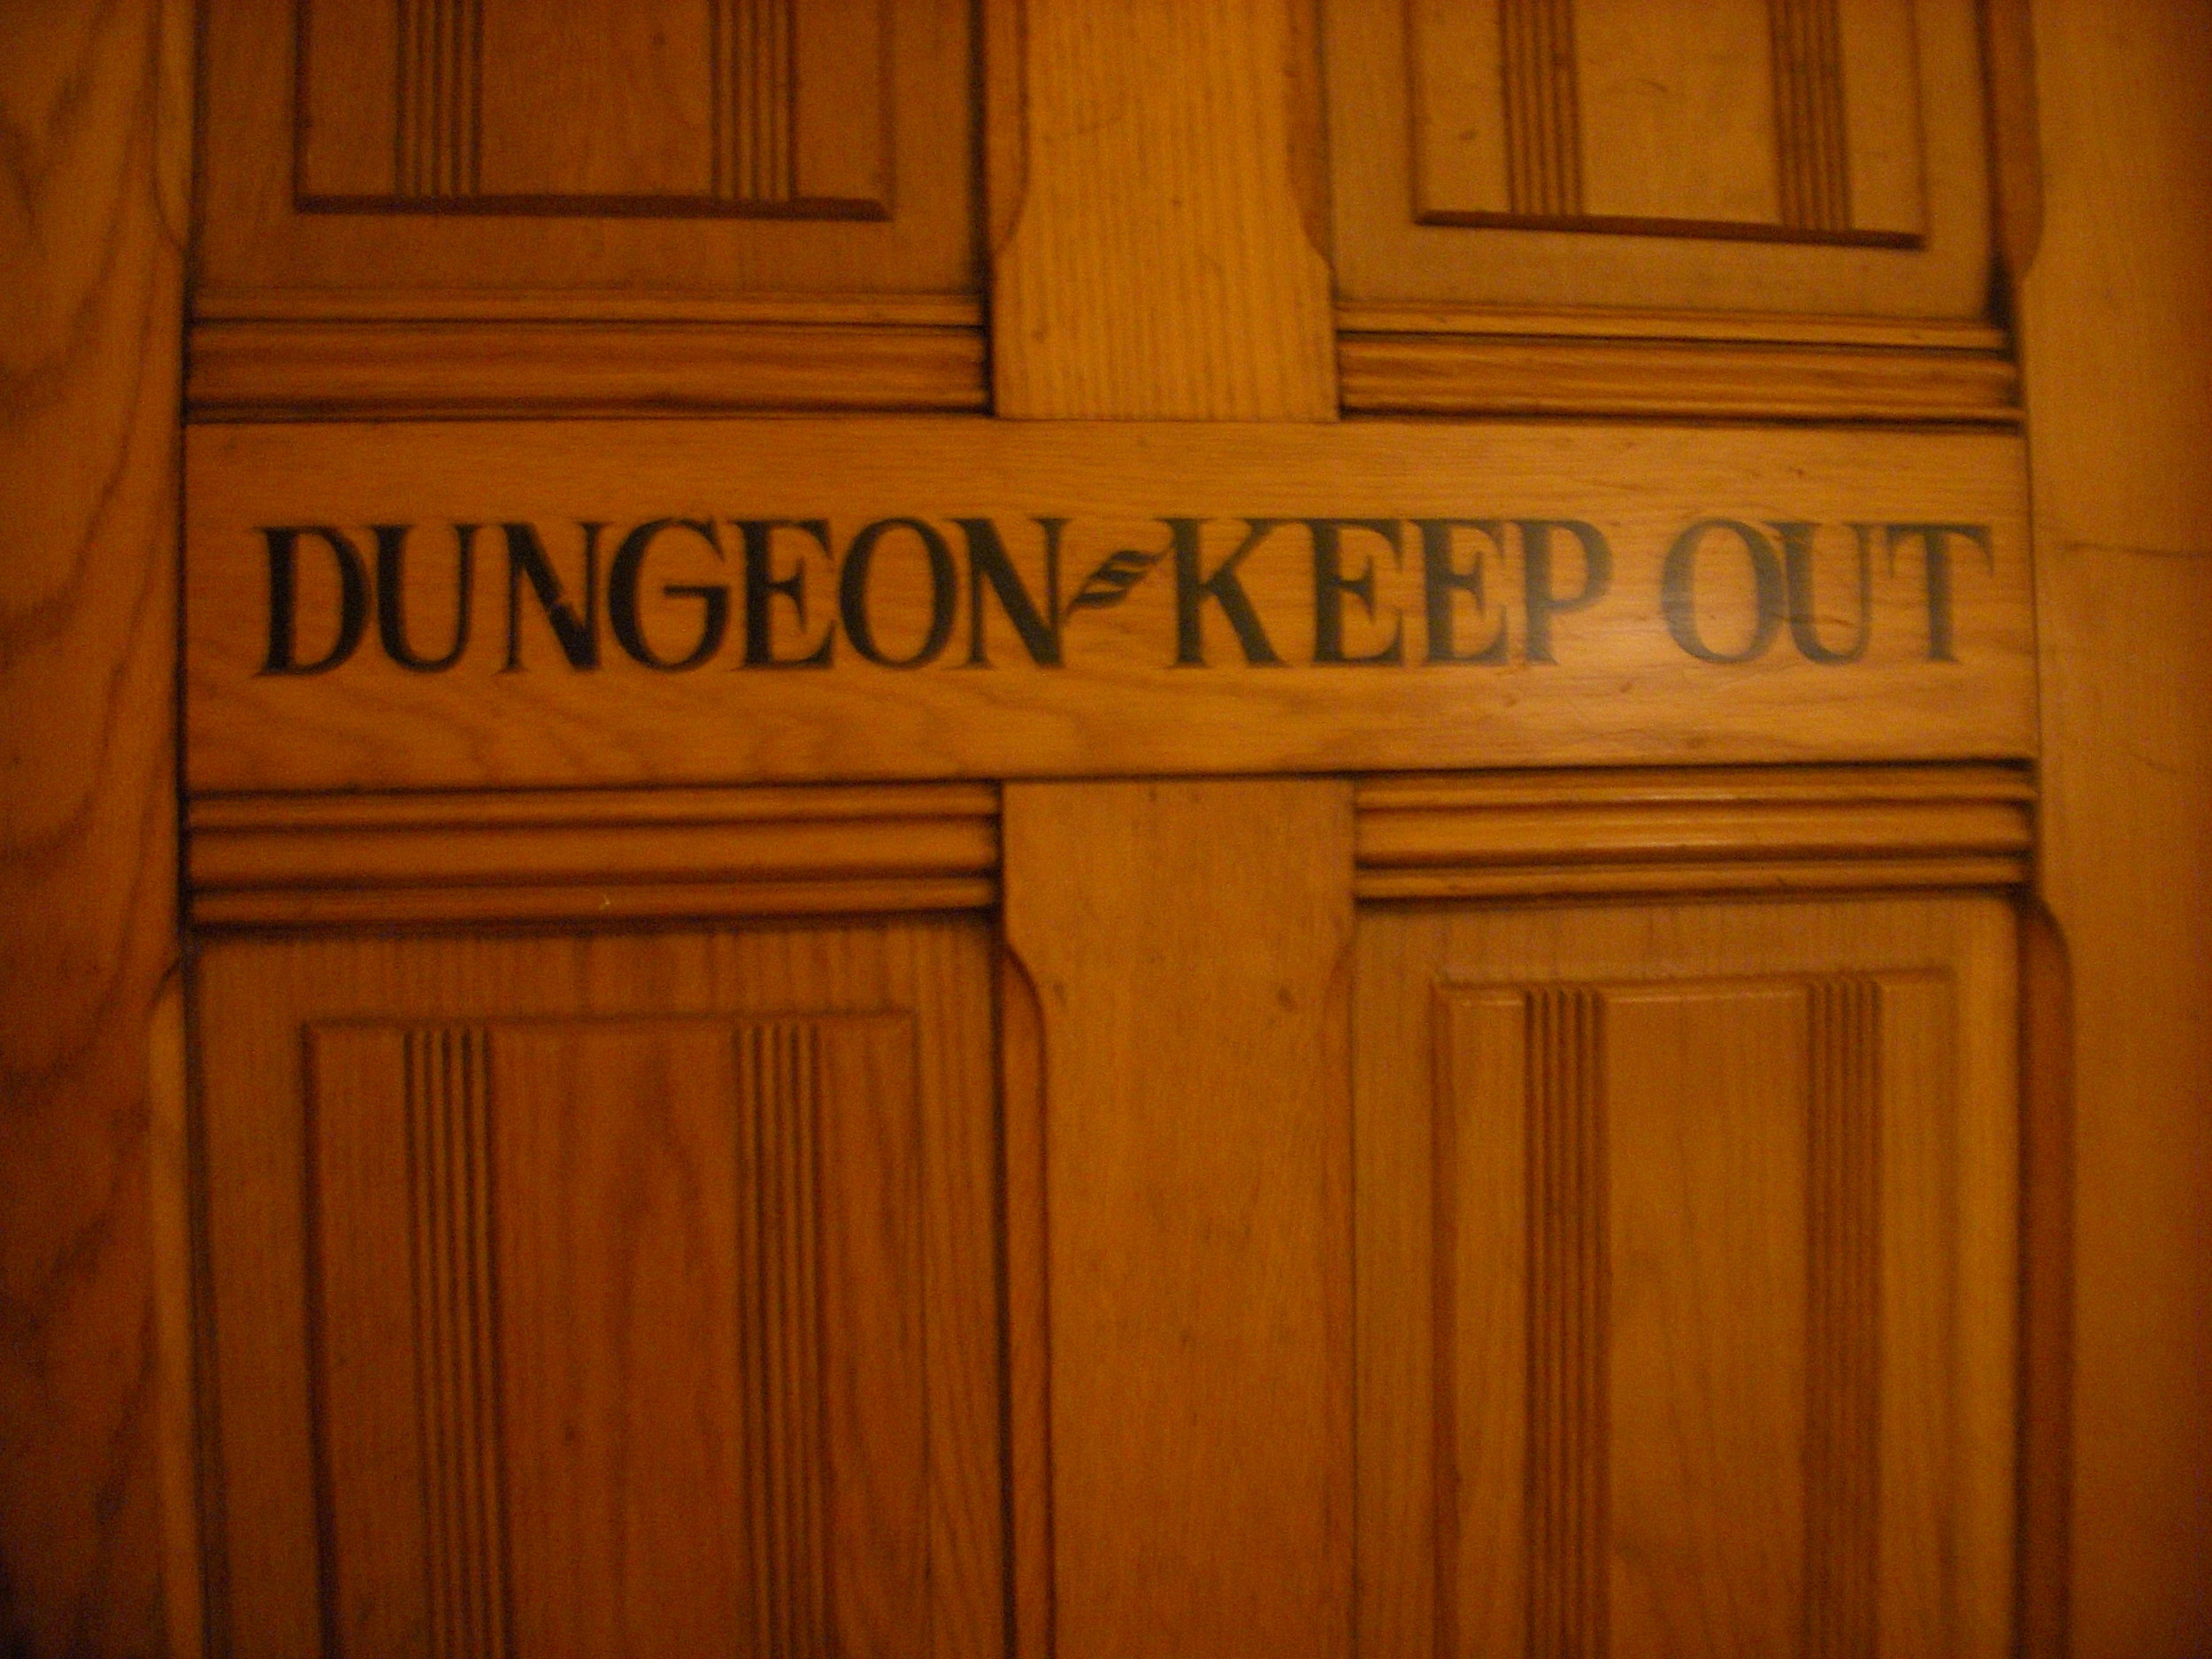 Never eat at a restaurant with a dungeon